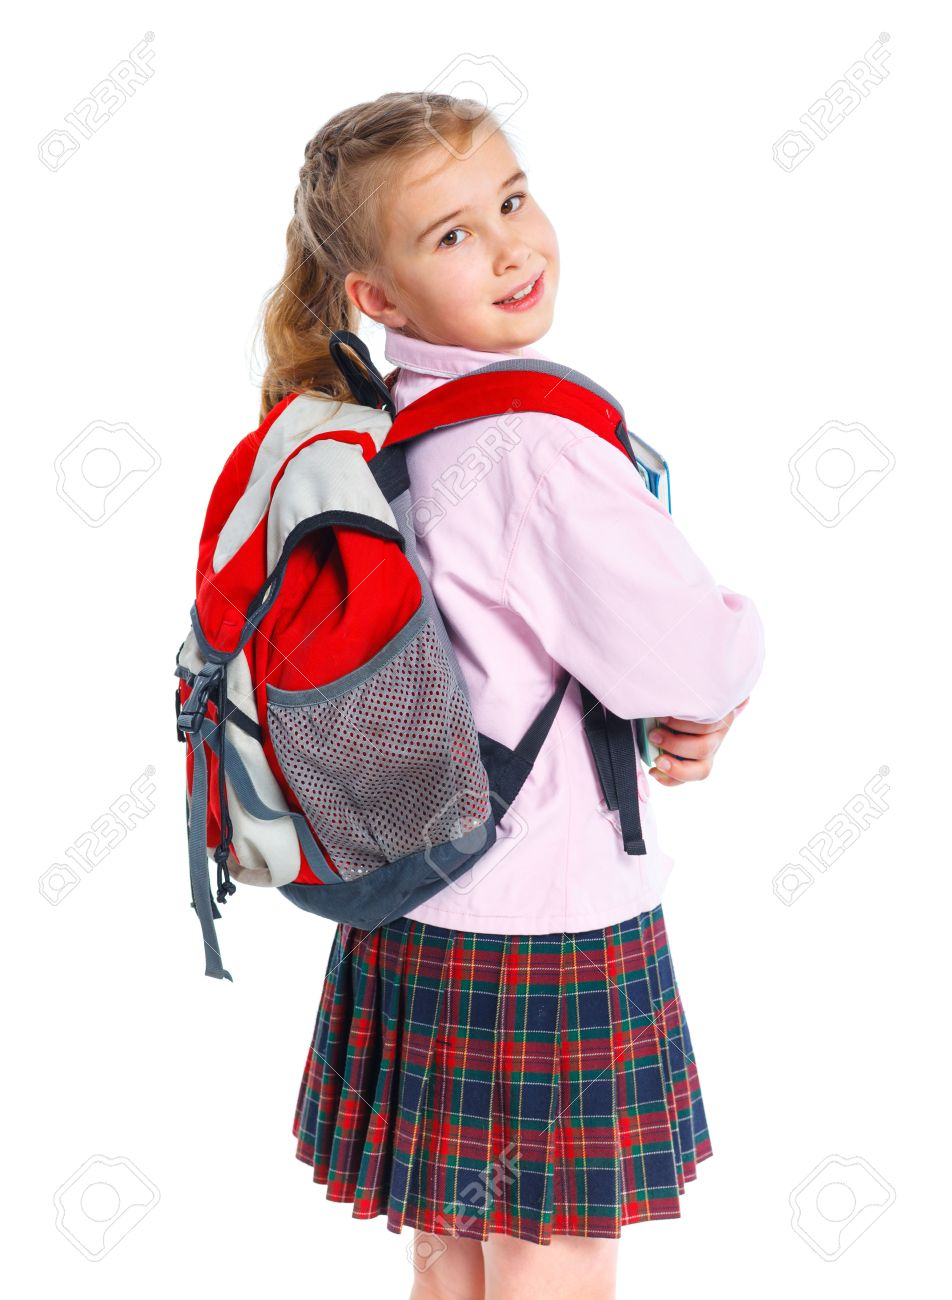 653605cc45a4 little blond school girl with backpack bag